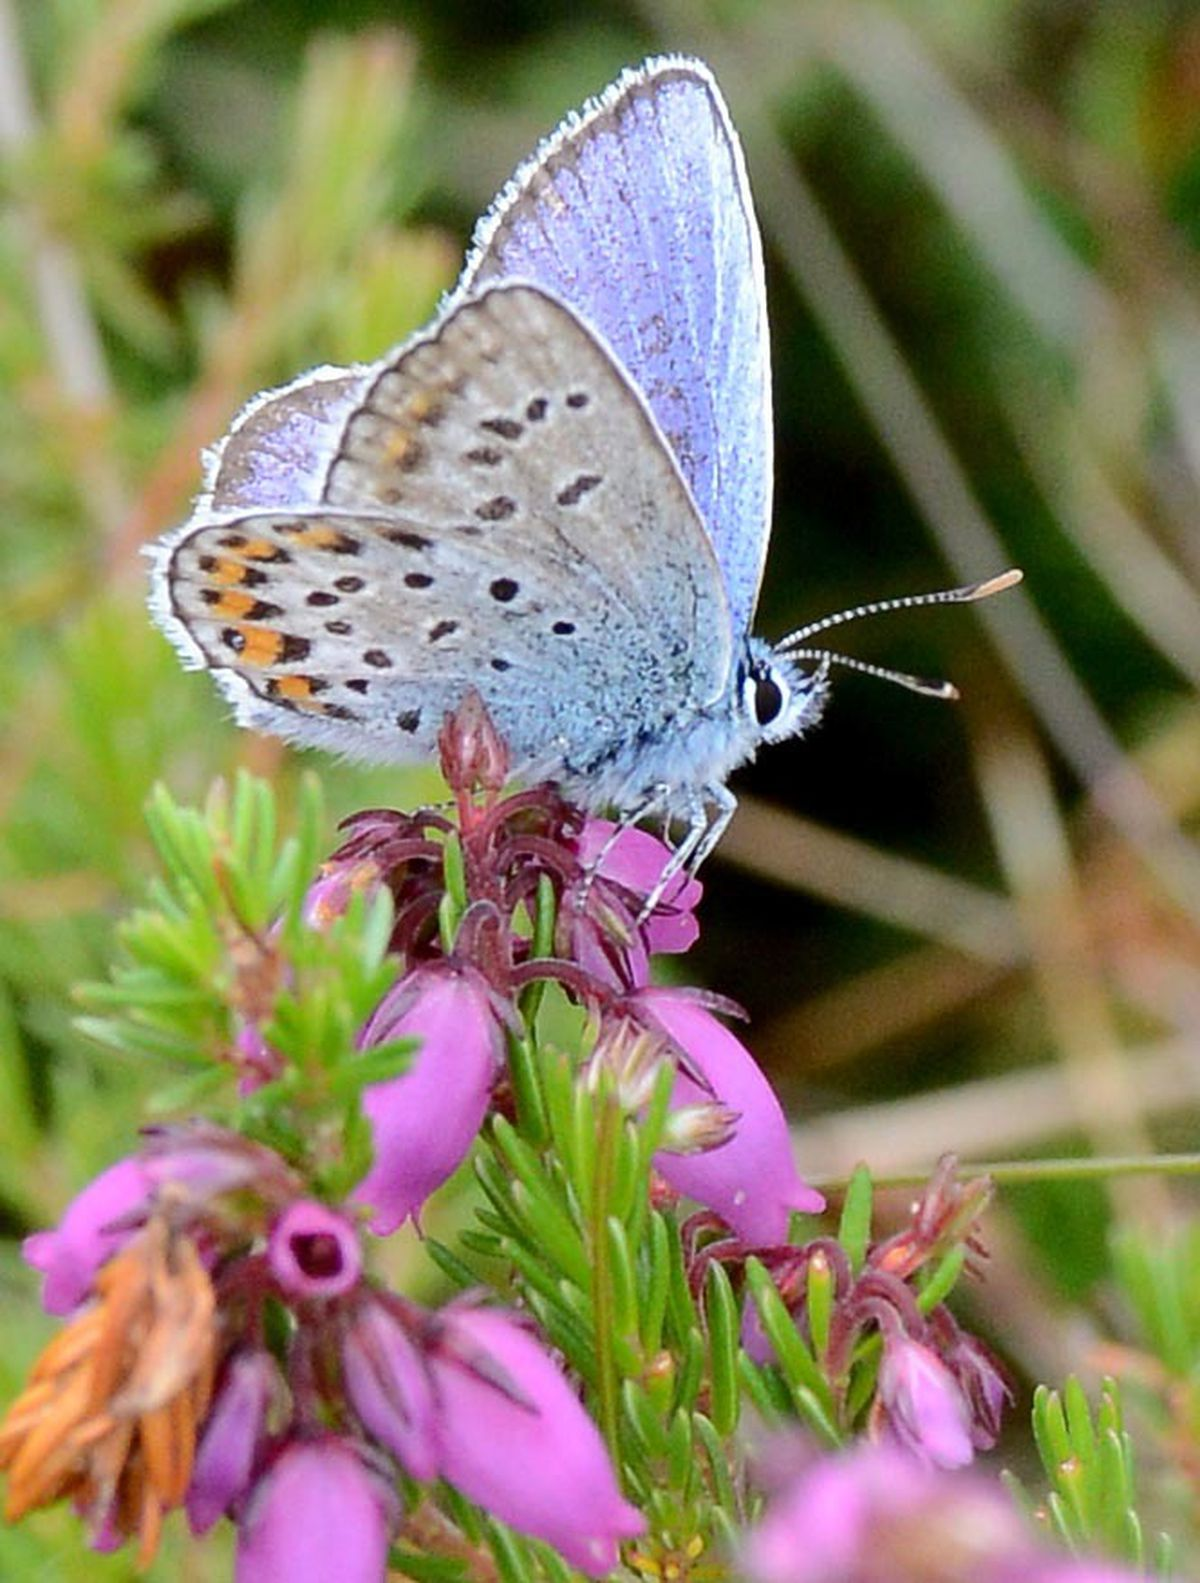 A rare Silver-studded Blue butterfly at Prees Heath Common